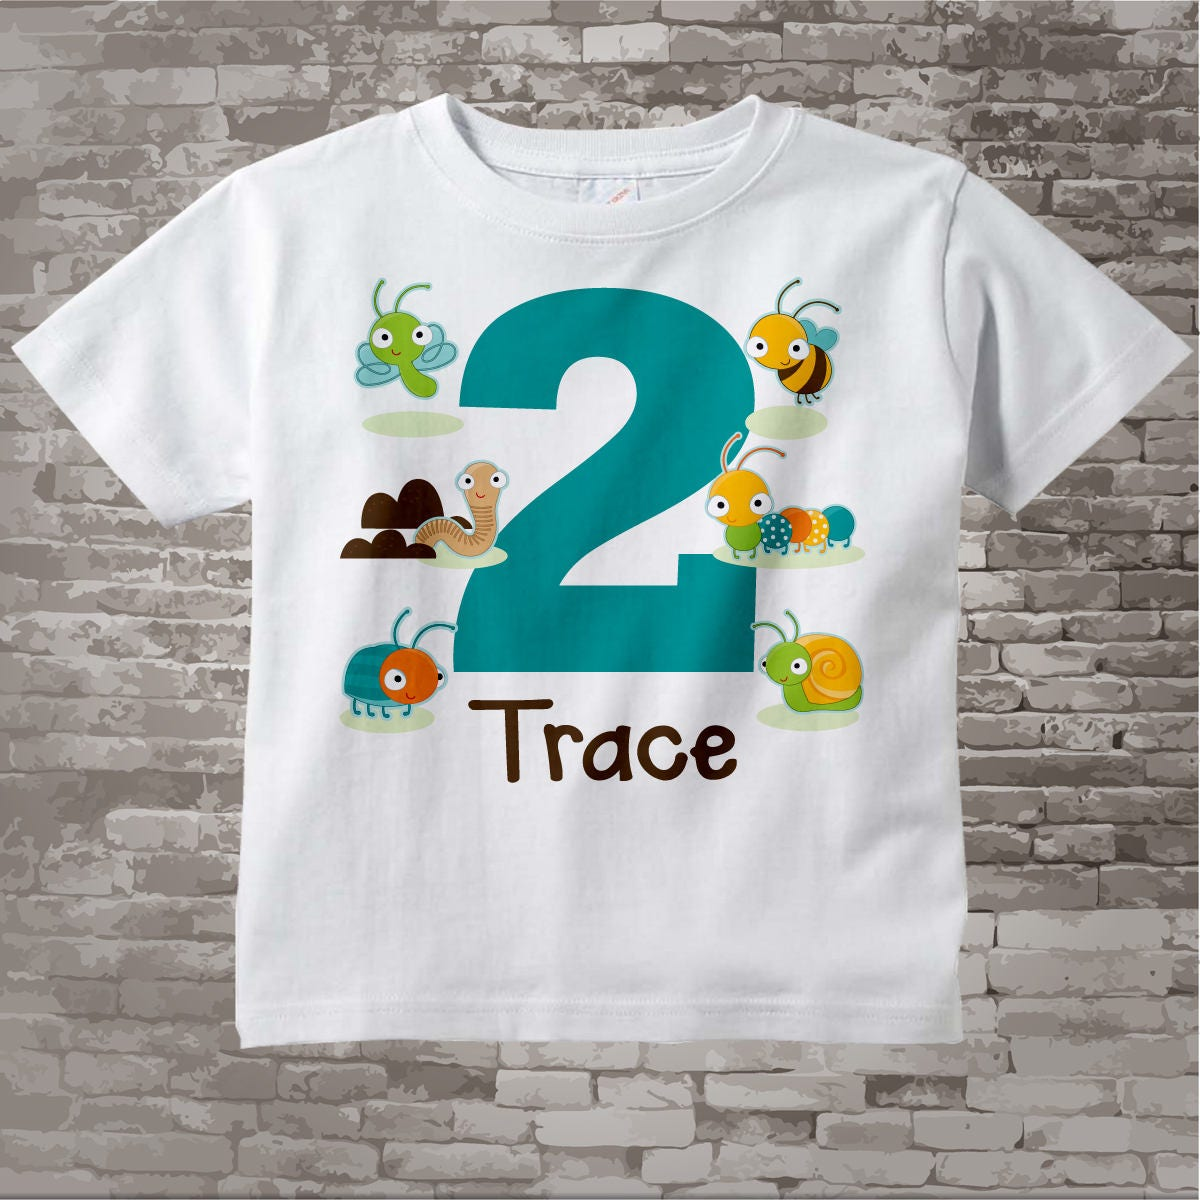 fc9cd056f Boy's Two Year Old Bug Birthday Shirt or Onesie with Name, 2nd Birthday  Shirt, Personalized Bug Birthday Theme 05122017b. gallery photo gallery  photo